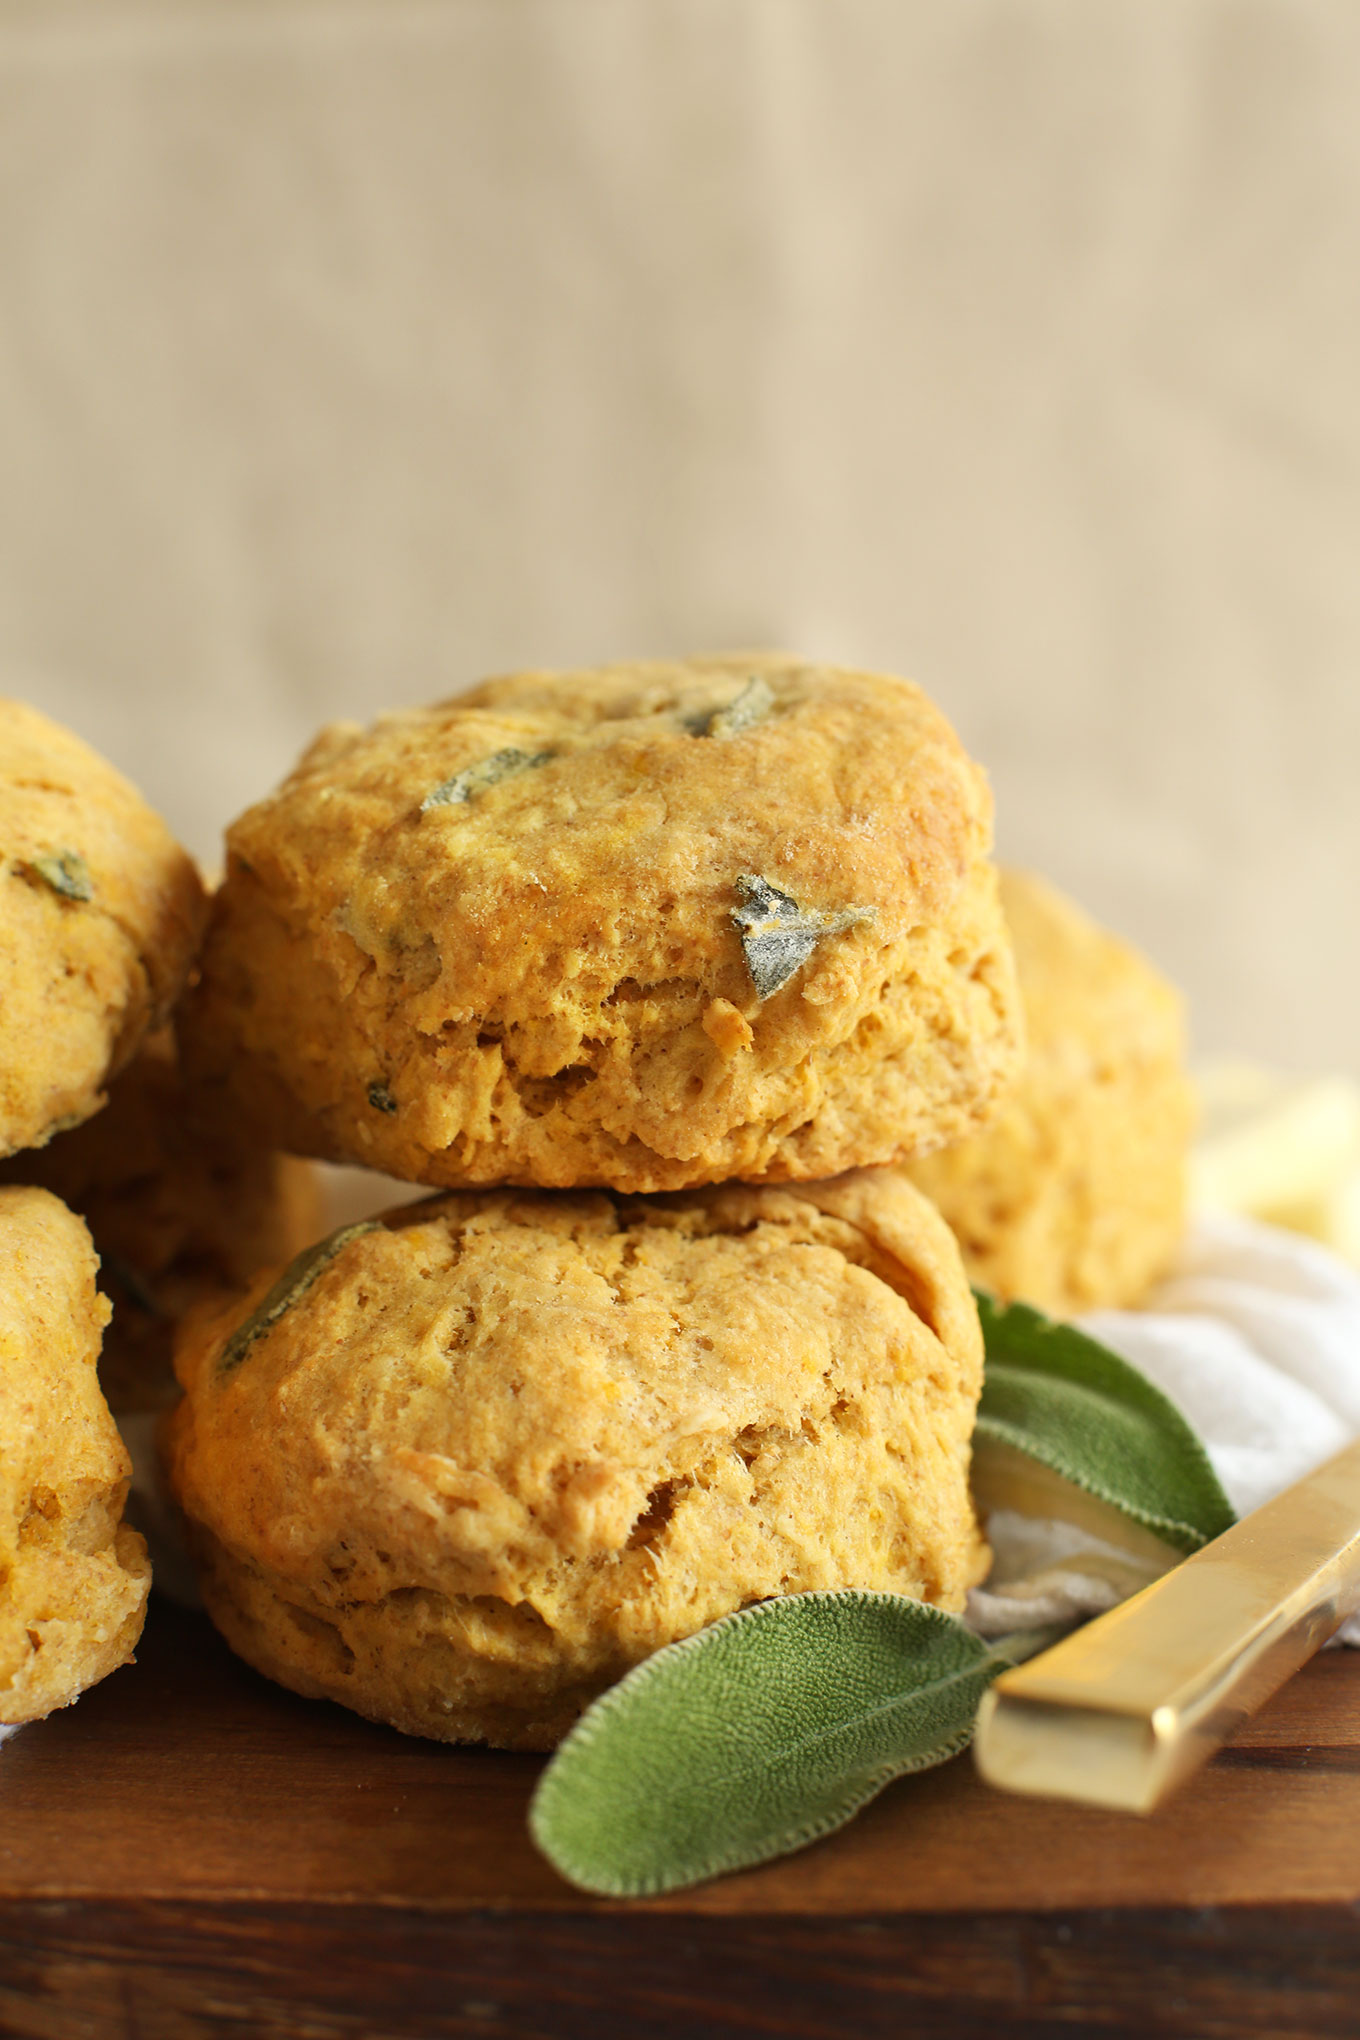 FLUFFY AMAZING Pumpkin Sage Biscuits! Fluffy, 1 bowl, 30 minutes